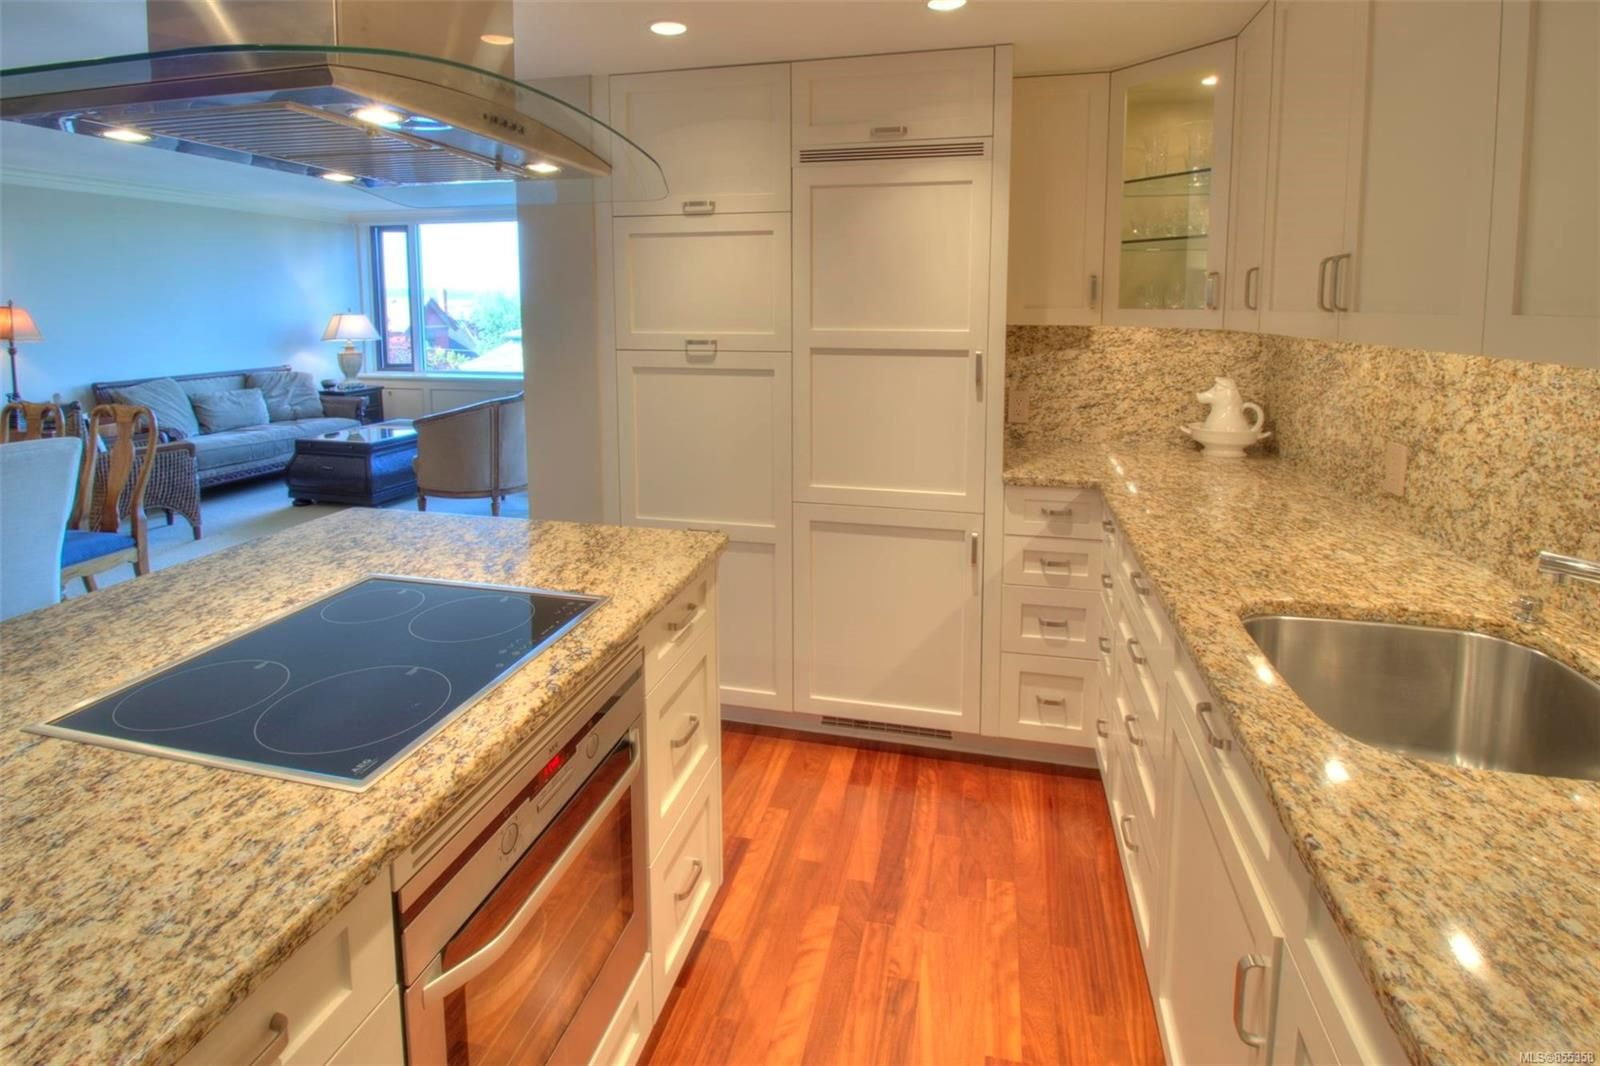 View of high end kitchen. All custom cabinetry, high end appliances and gorgeous granite.